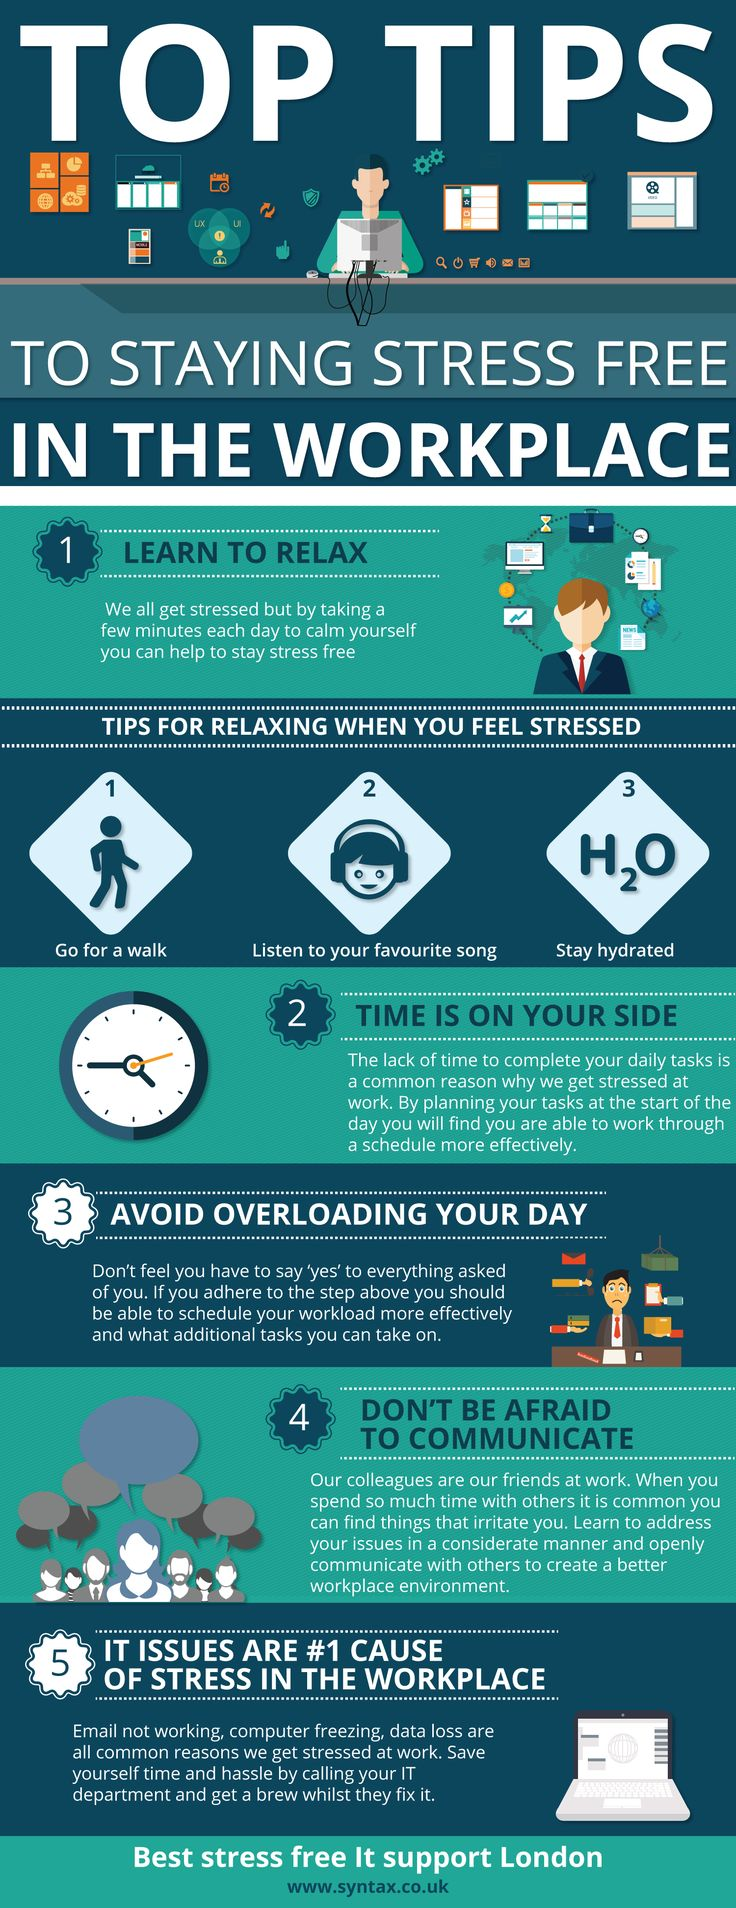 Office safety tips the top tips to staying stress free in the workplace infographic was designed the help everyone who works in an office to reduce their